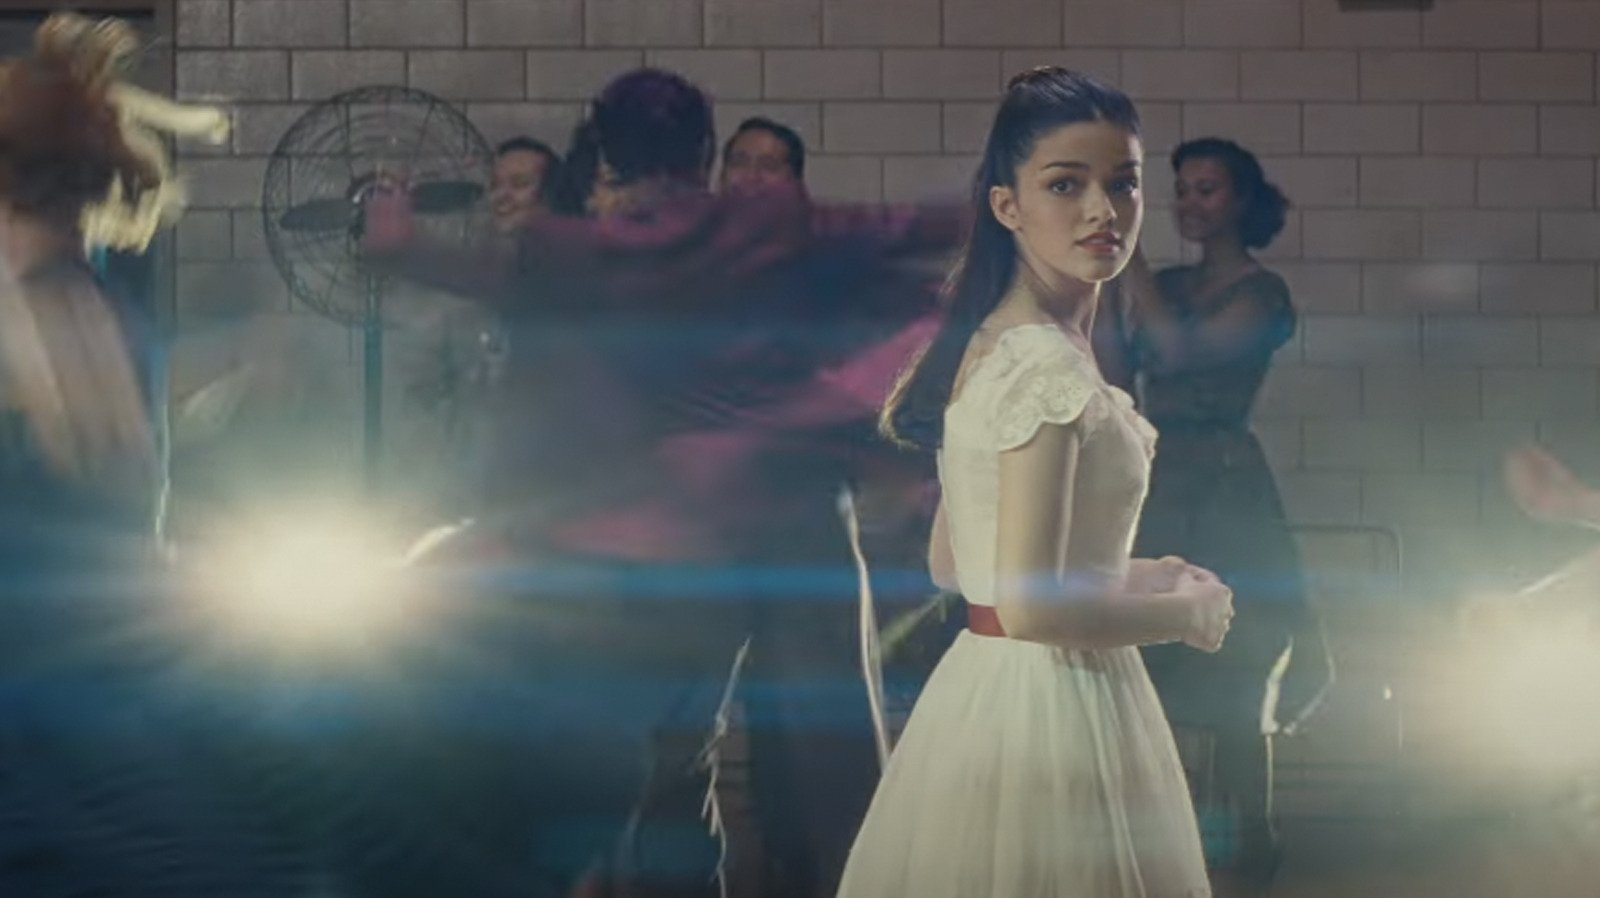 See How Spielberg's Remake Compares To The Original West Side Story